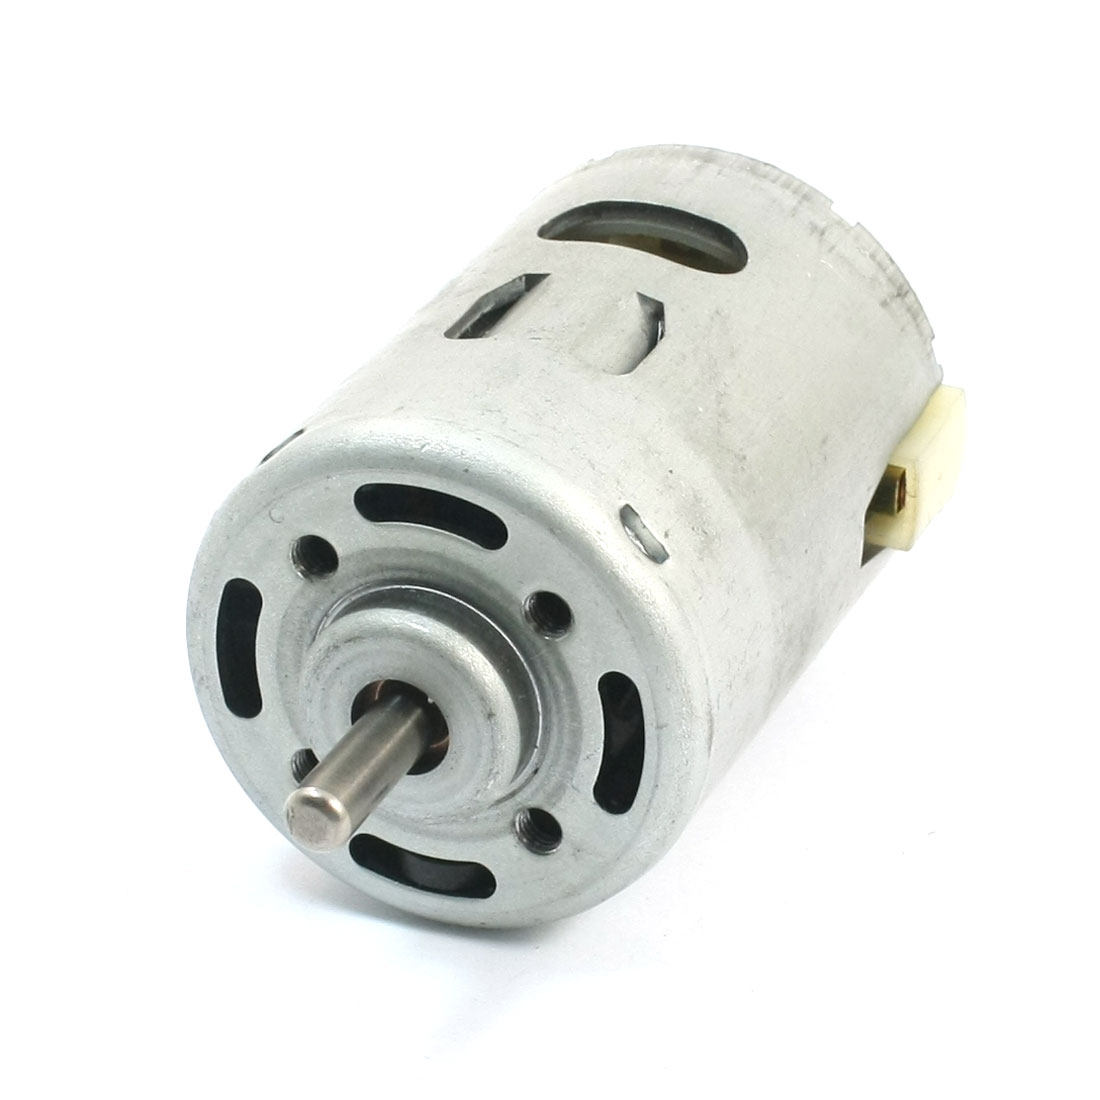 120V 2800RPM Rotated Speed 2 Pin Cylinder Electric DC Micro Motor